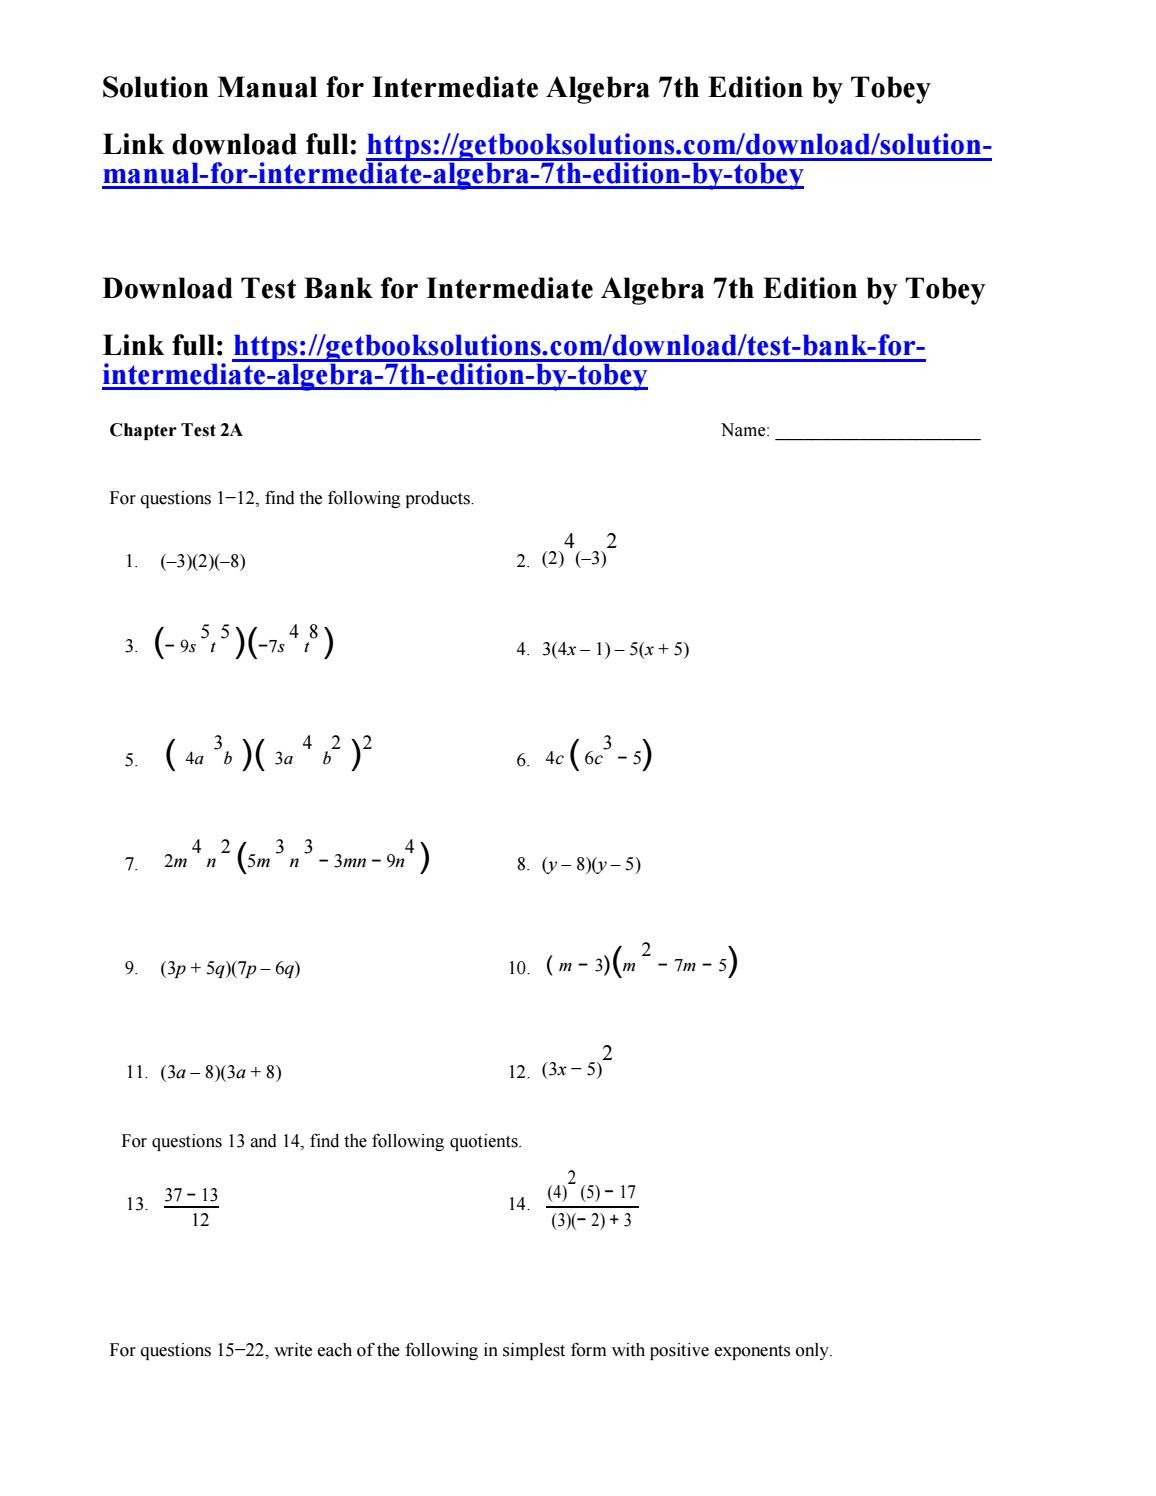 Solution manual for intermediate algebra 7th edition by tobey | solution  manual | Pinterest | Manual, Algebra and Lpn to rn